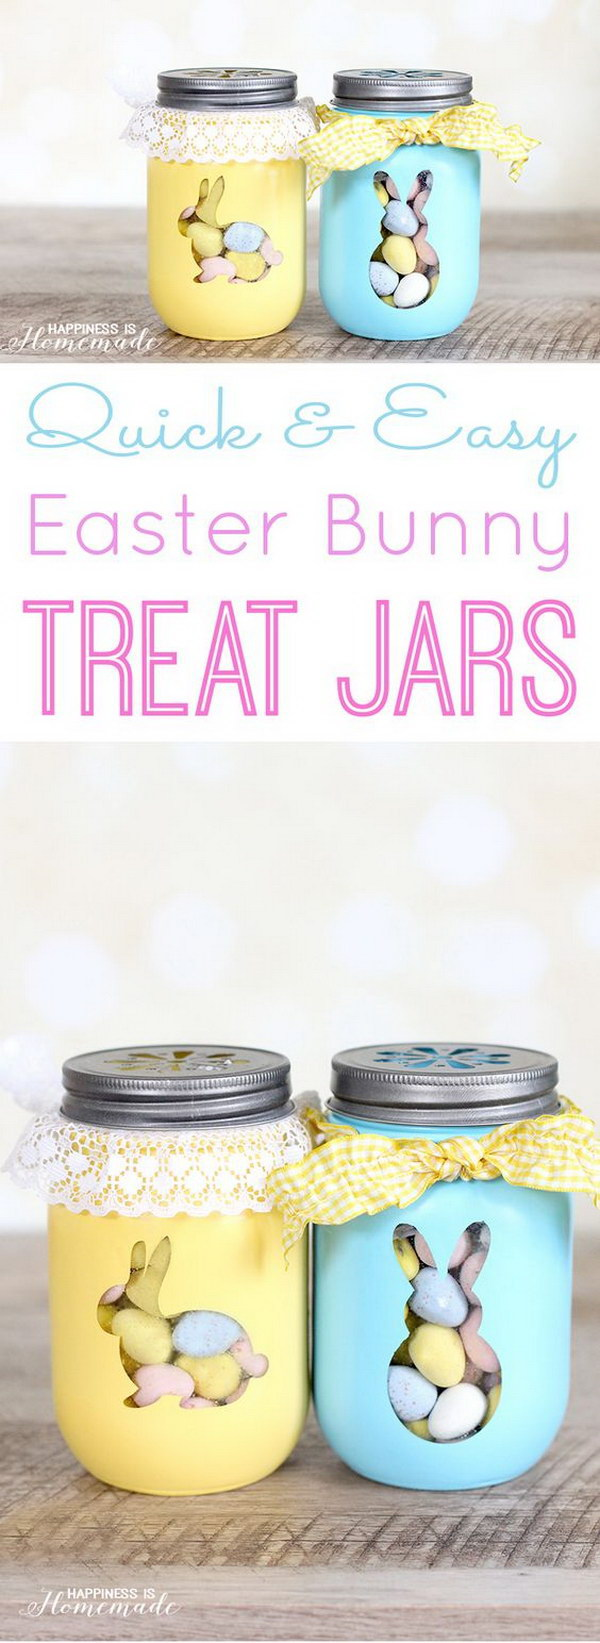 Easter Bunny Treat Jars.